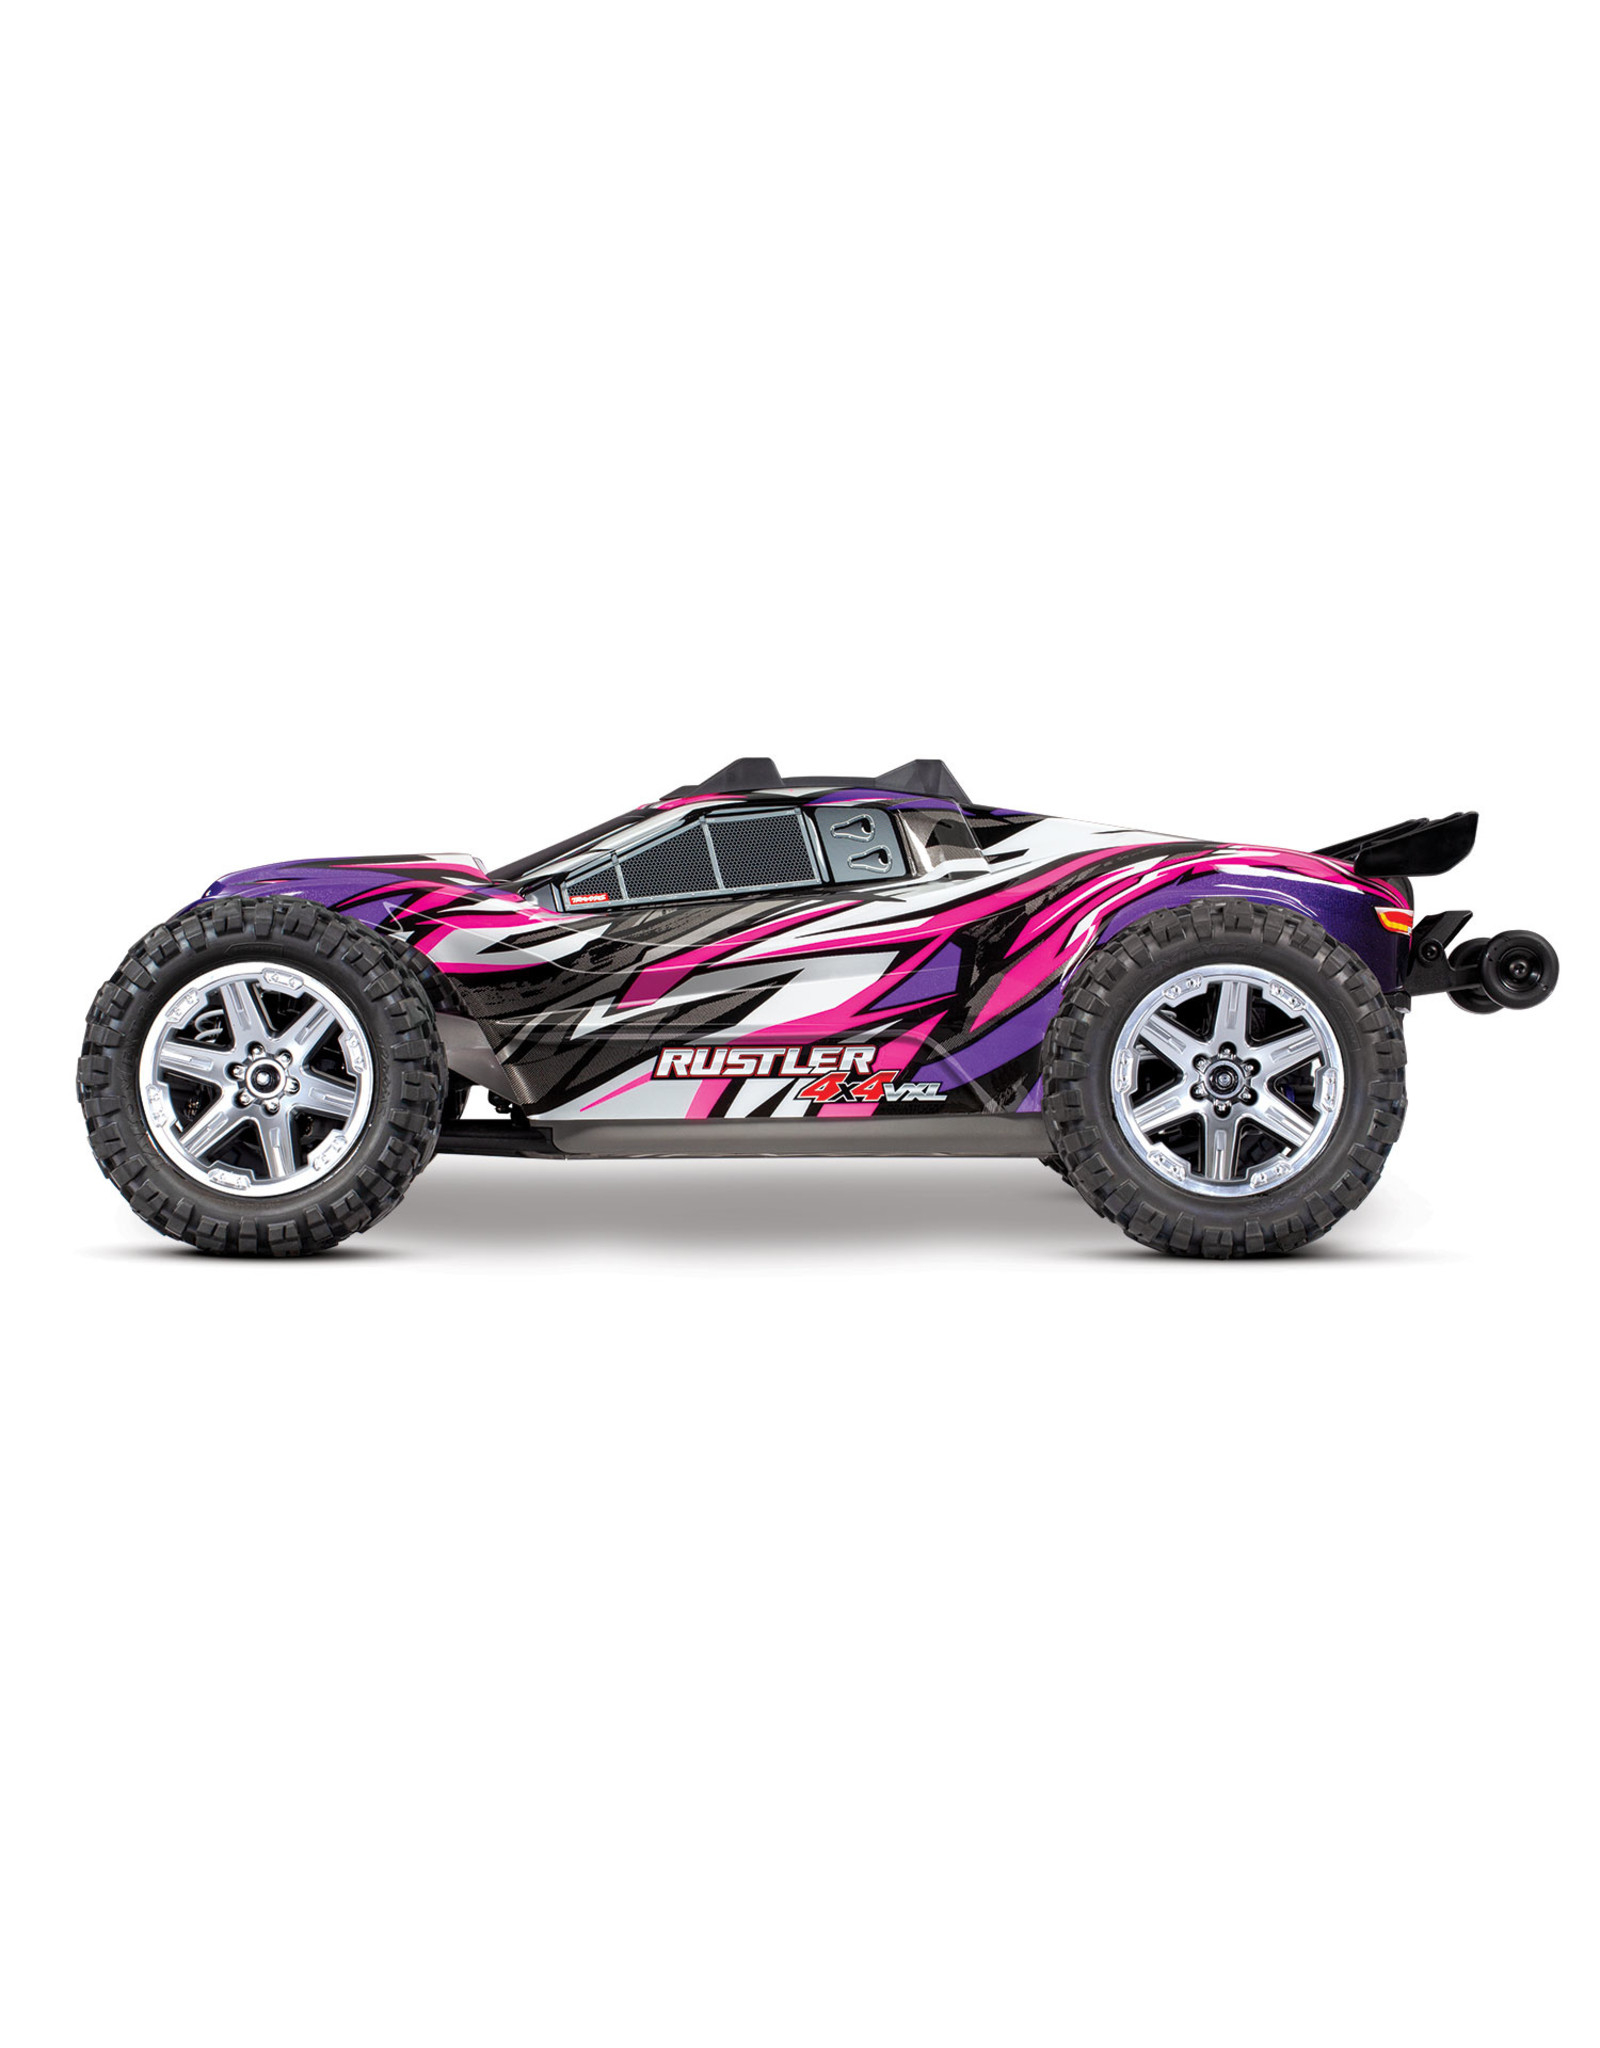 Traxxas 1/10 Rustler 4x4 VXL Brushless (PINK): No Battery, No Charger (67076-4)